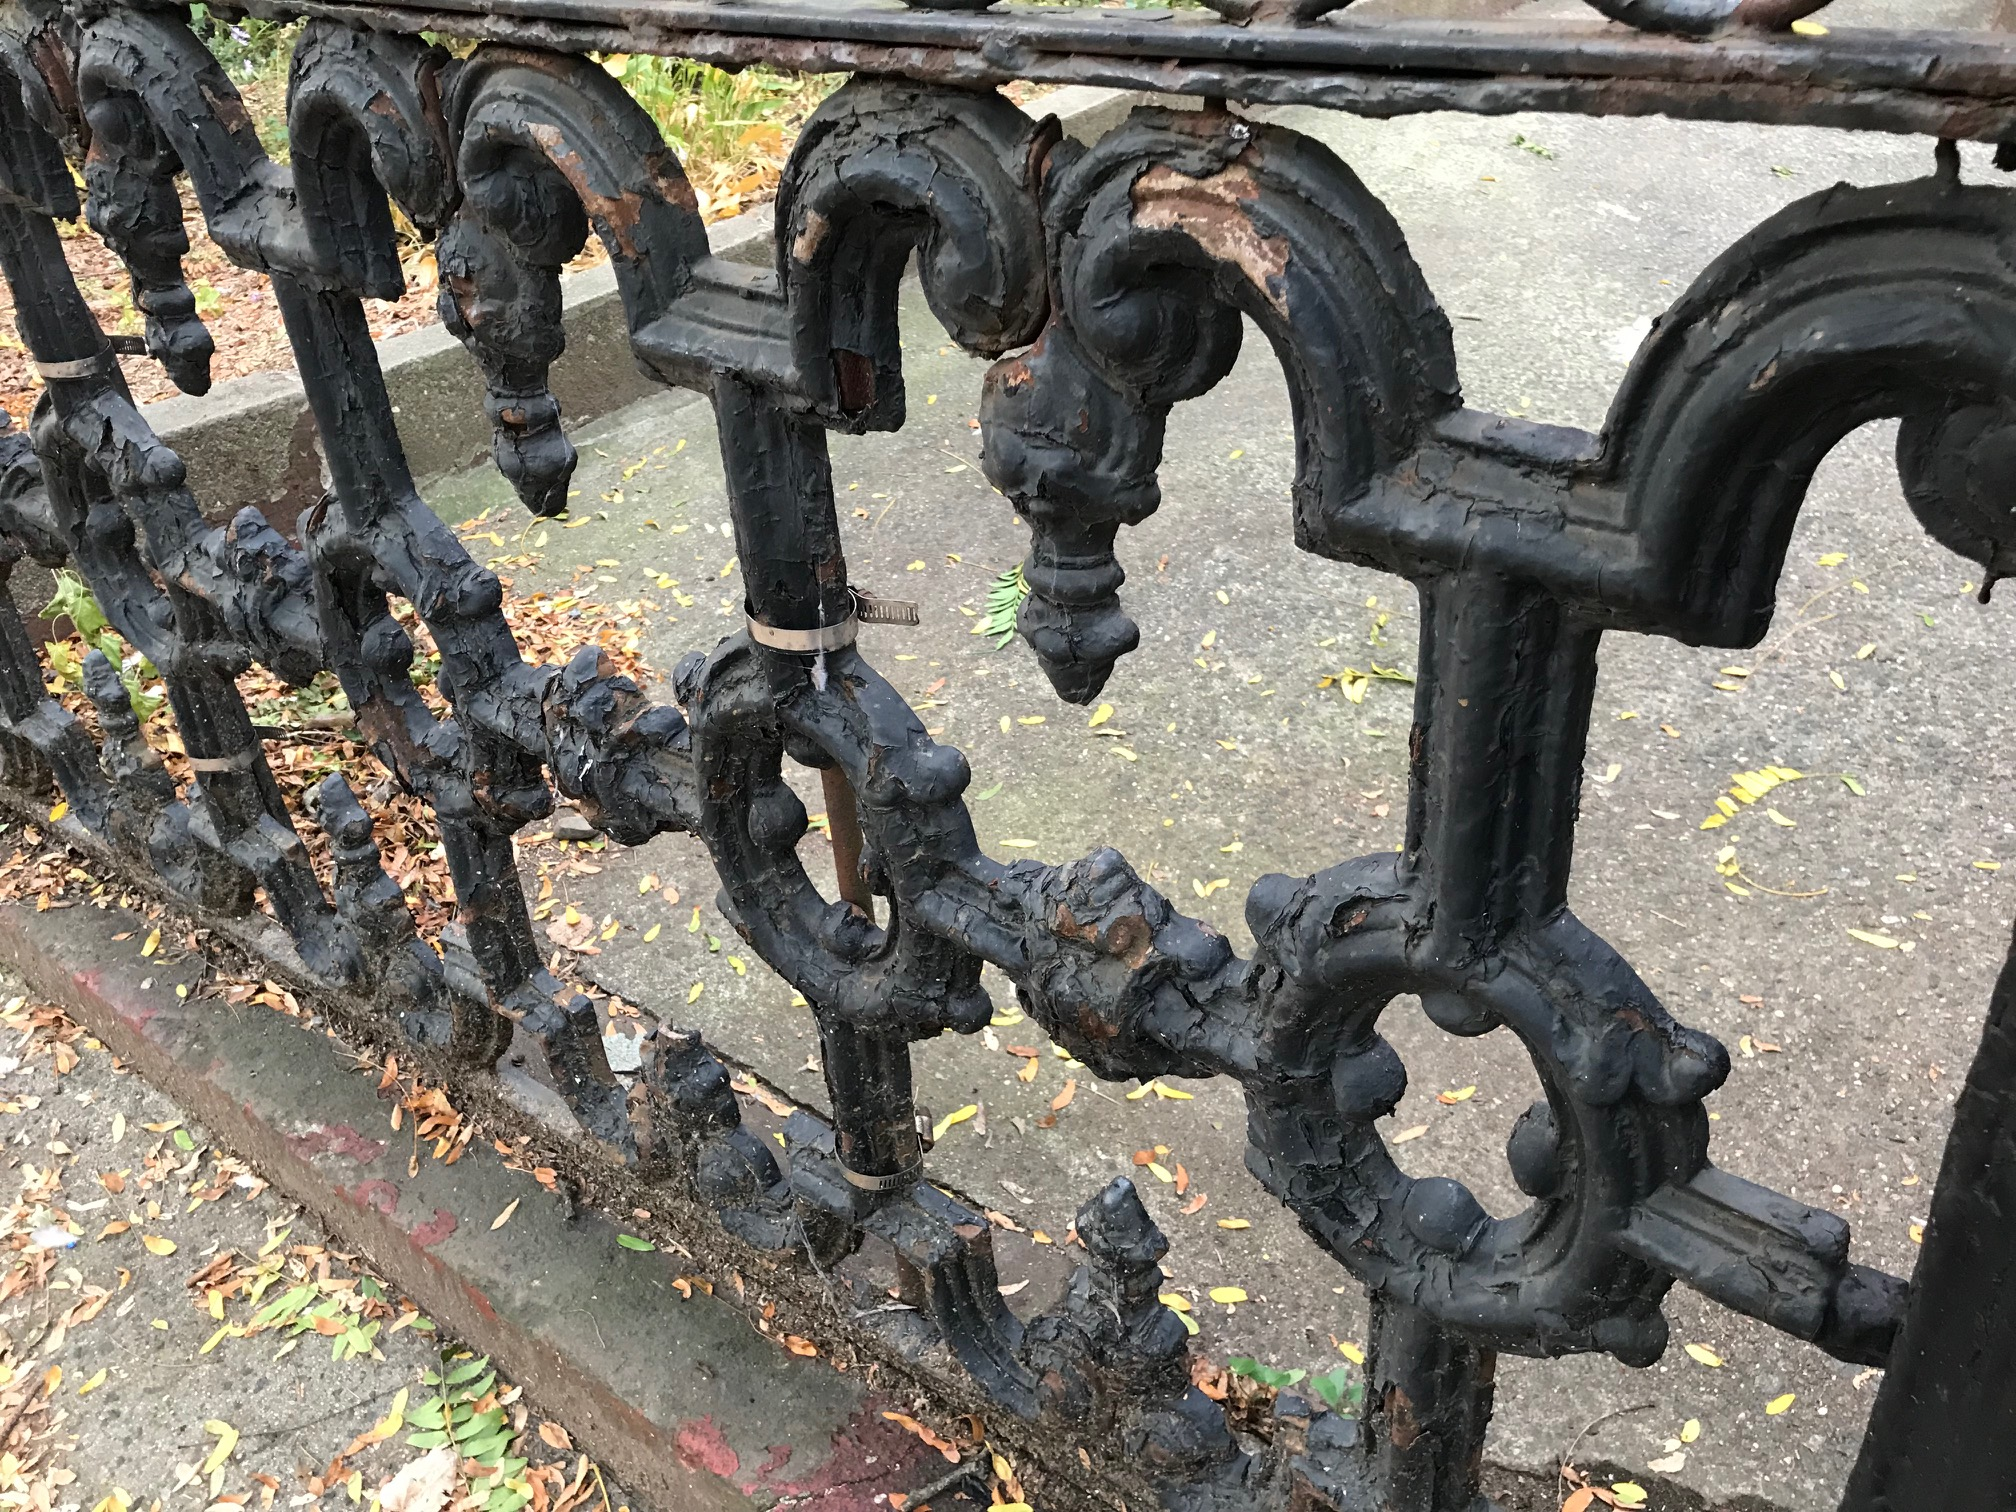 How Can I Tell If The Paint On My Home Is Lead Paint Read This Post For Close Up Images Of This Lead Painted Railing Brooklyn Ny Lead Safe Mama